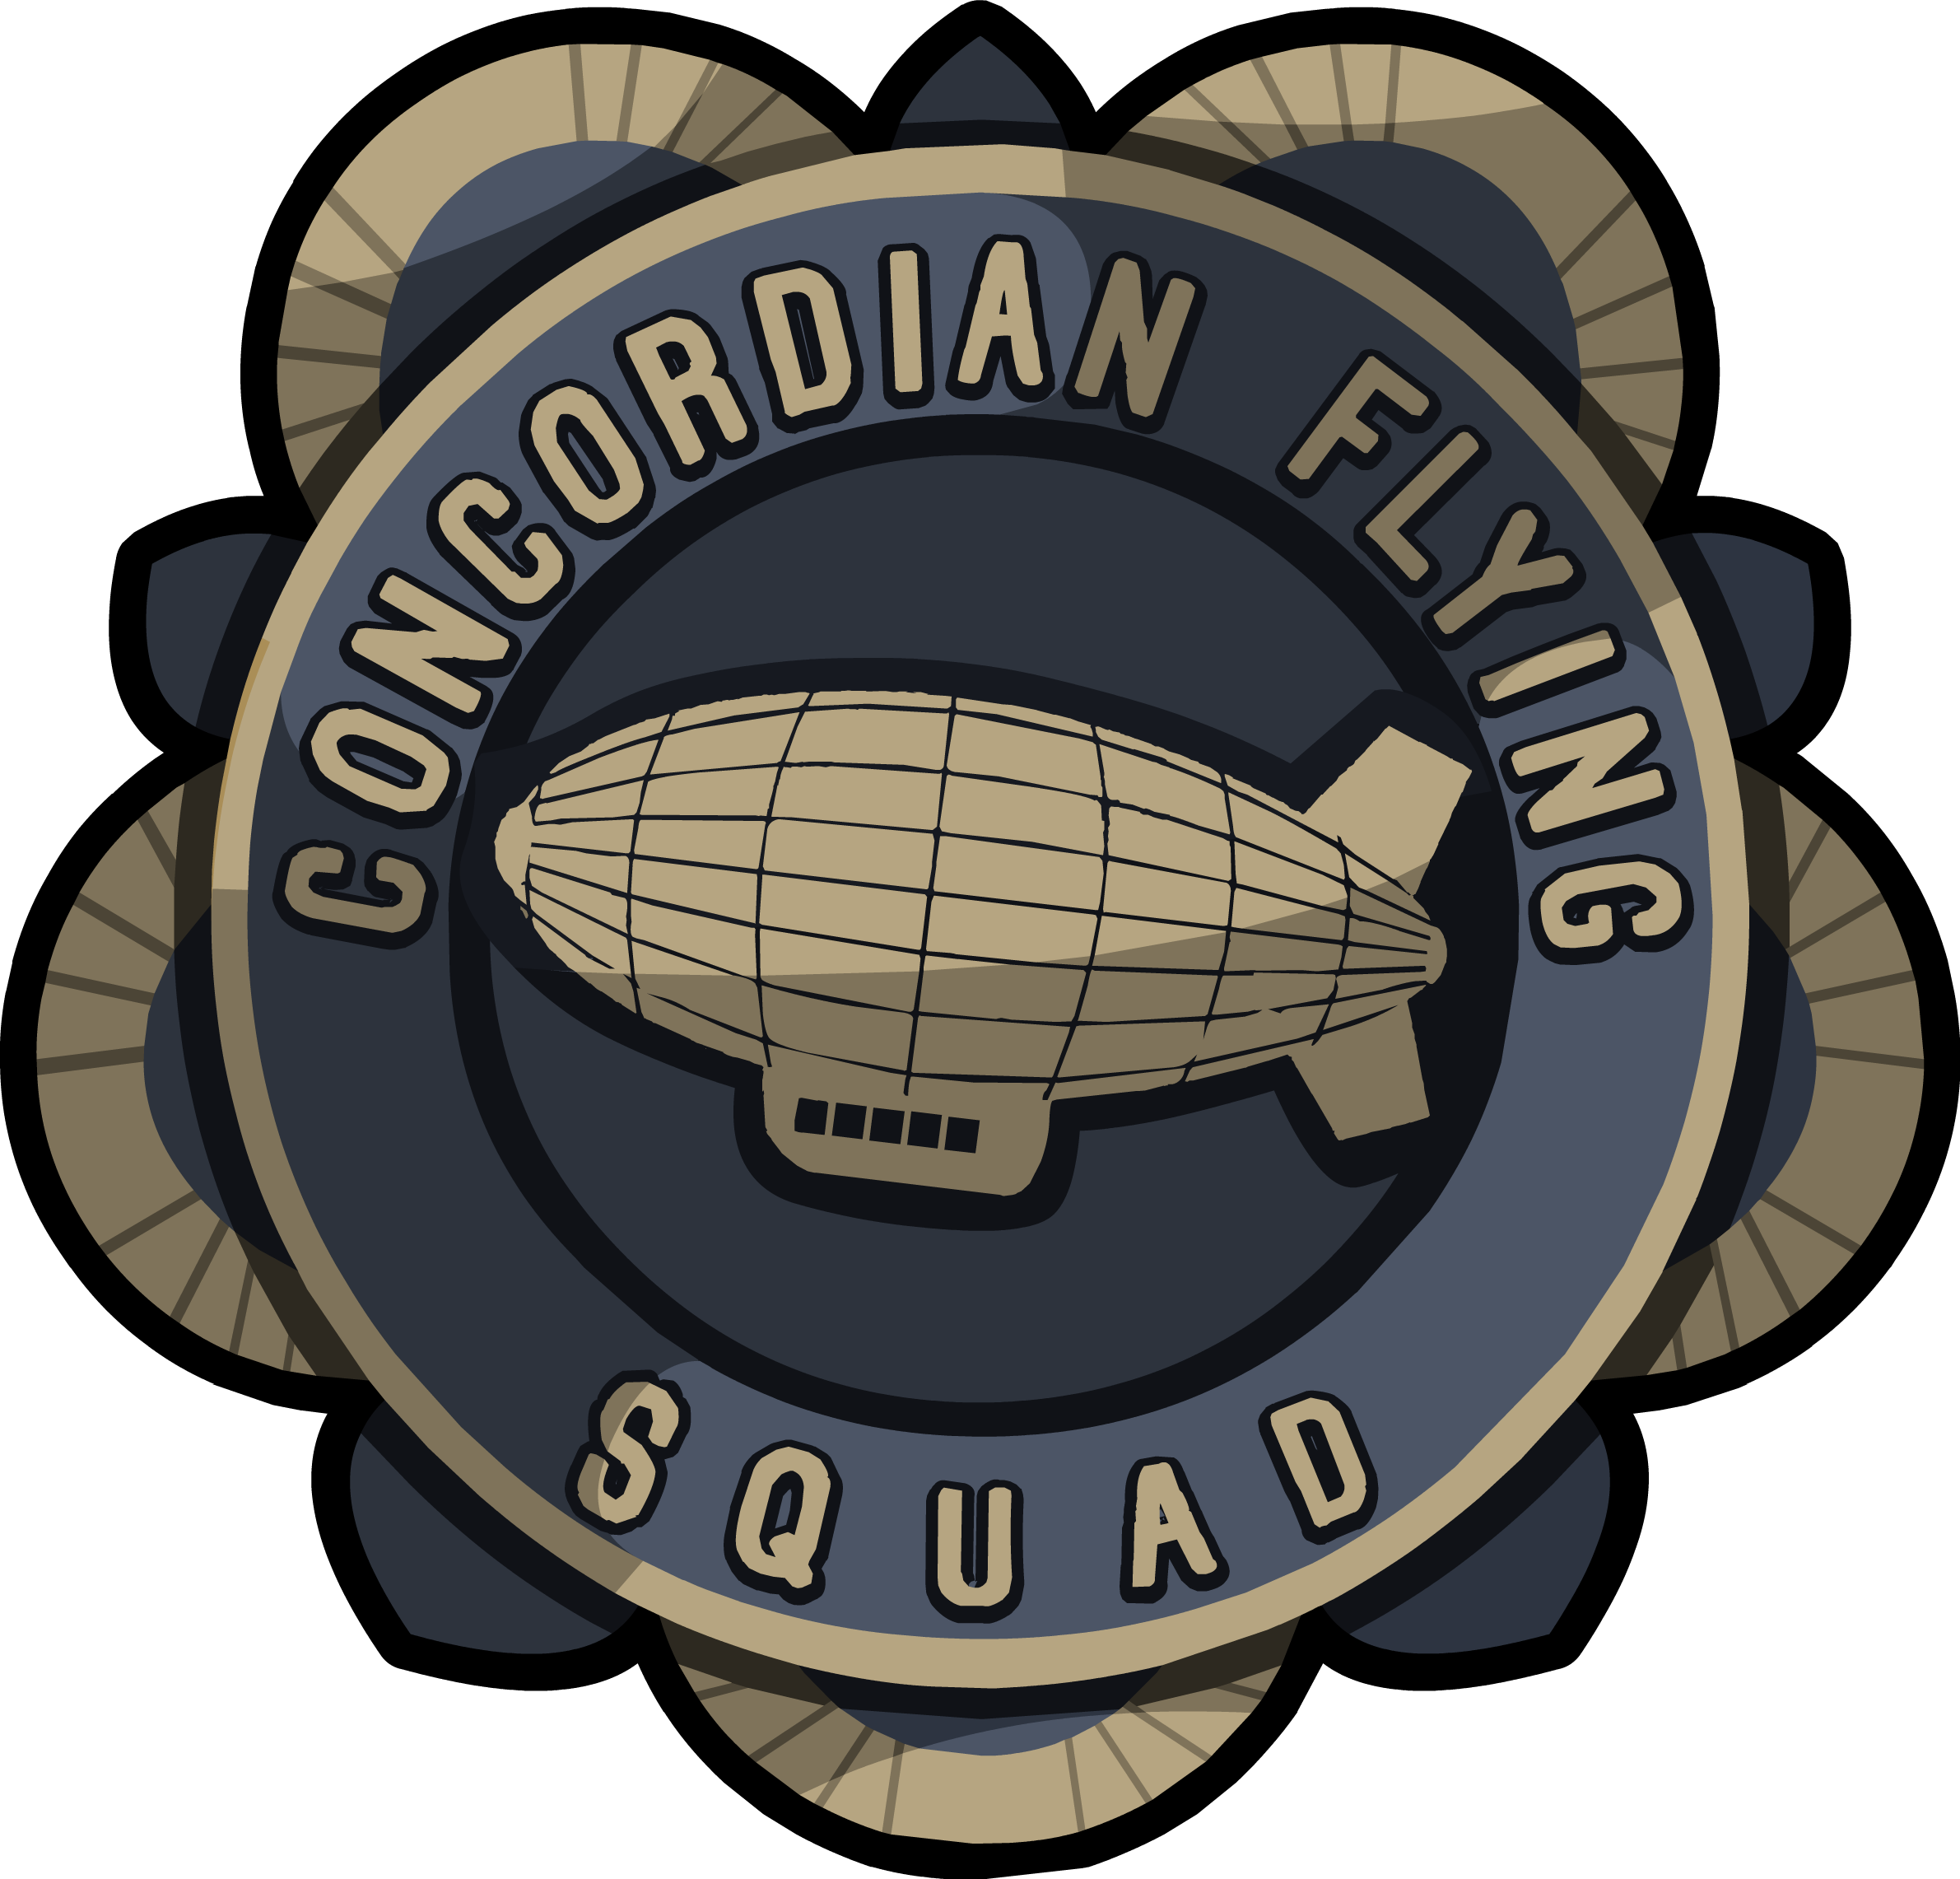 Concordian flying squad criminal. Crime clipart mystery number